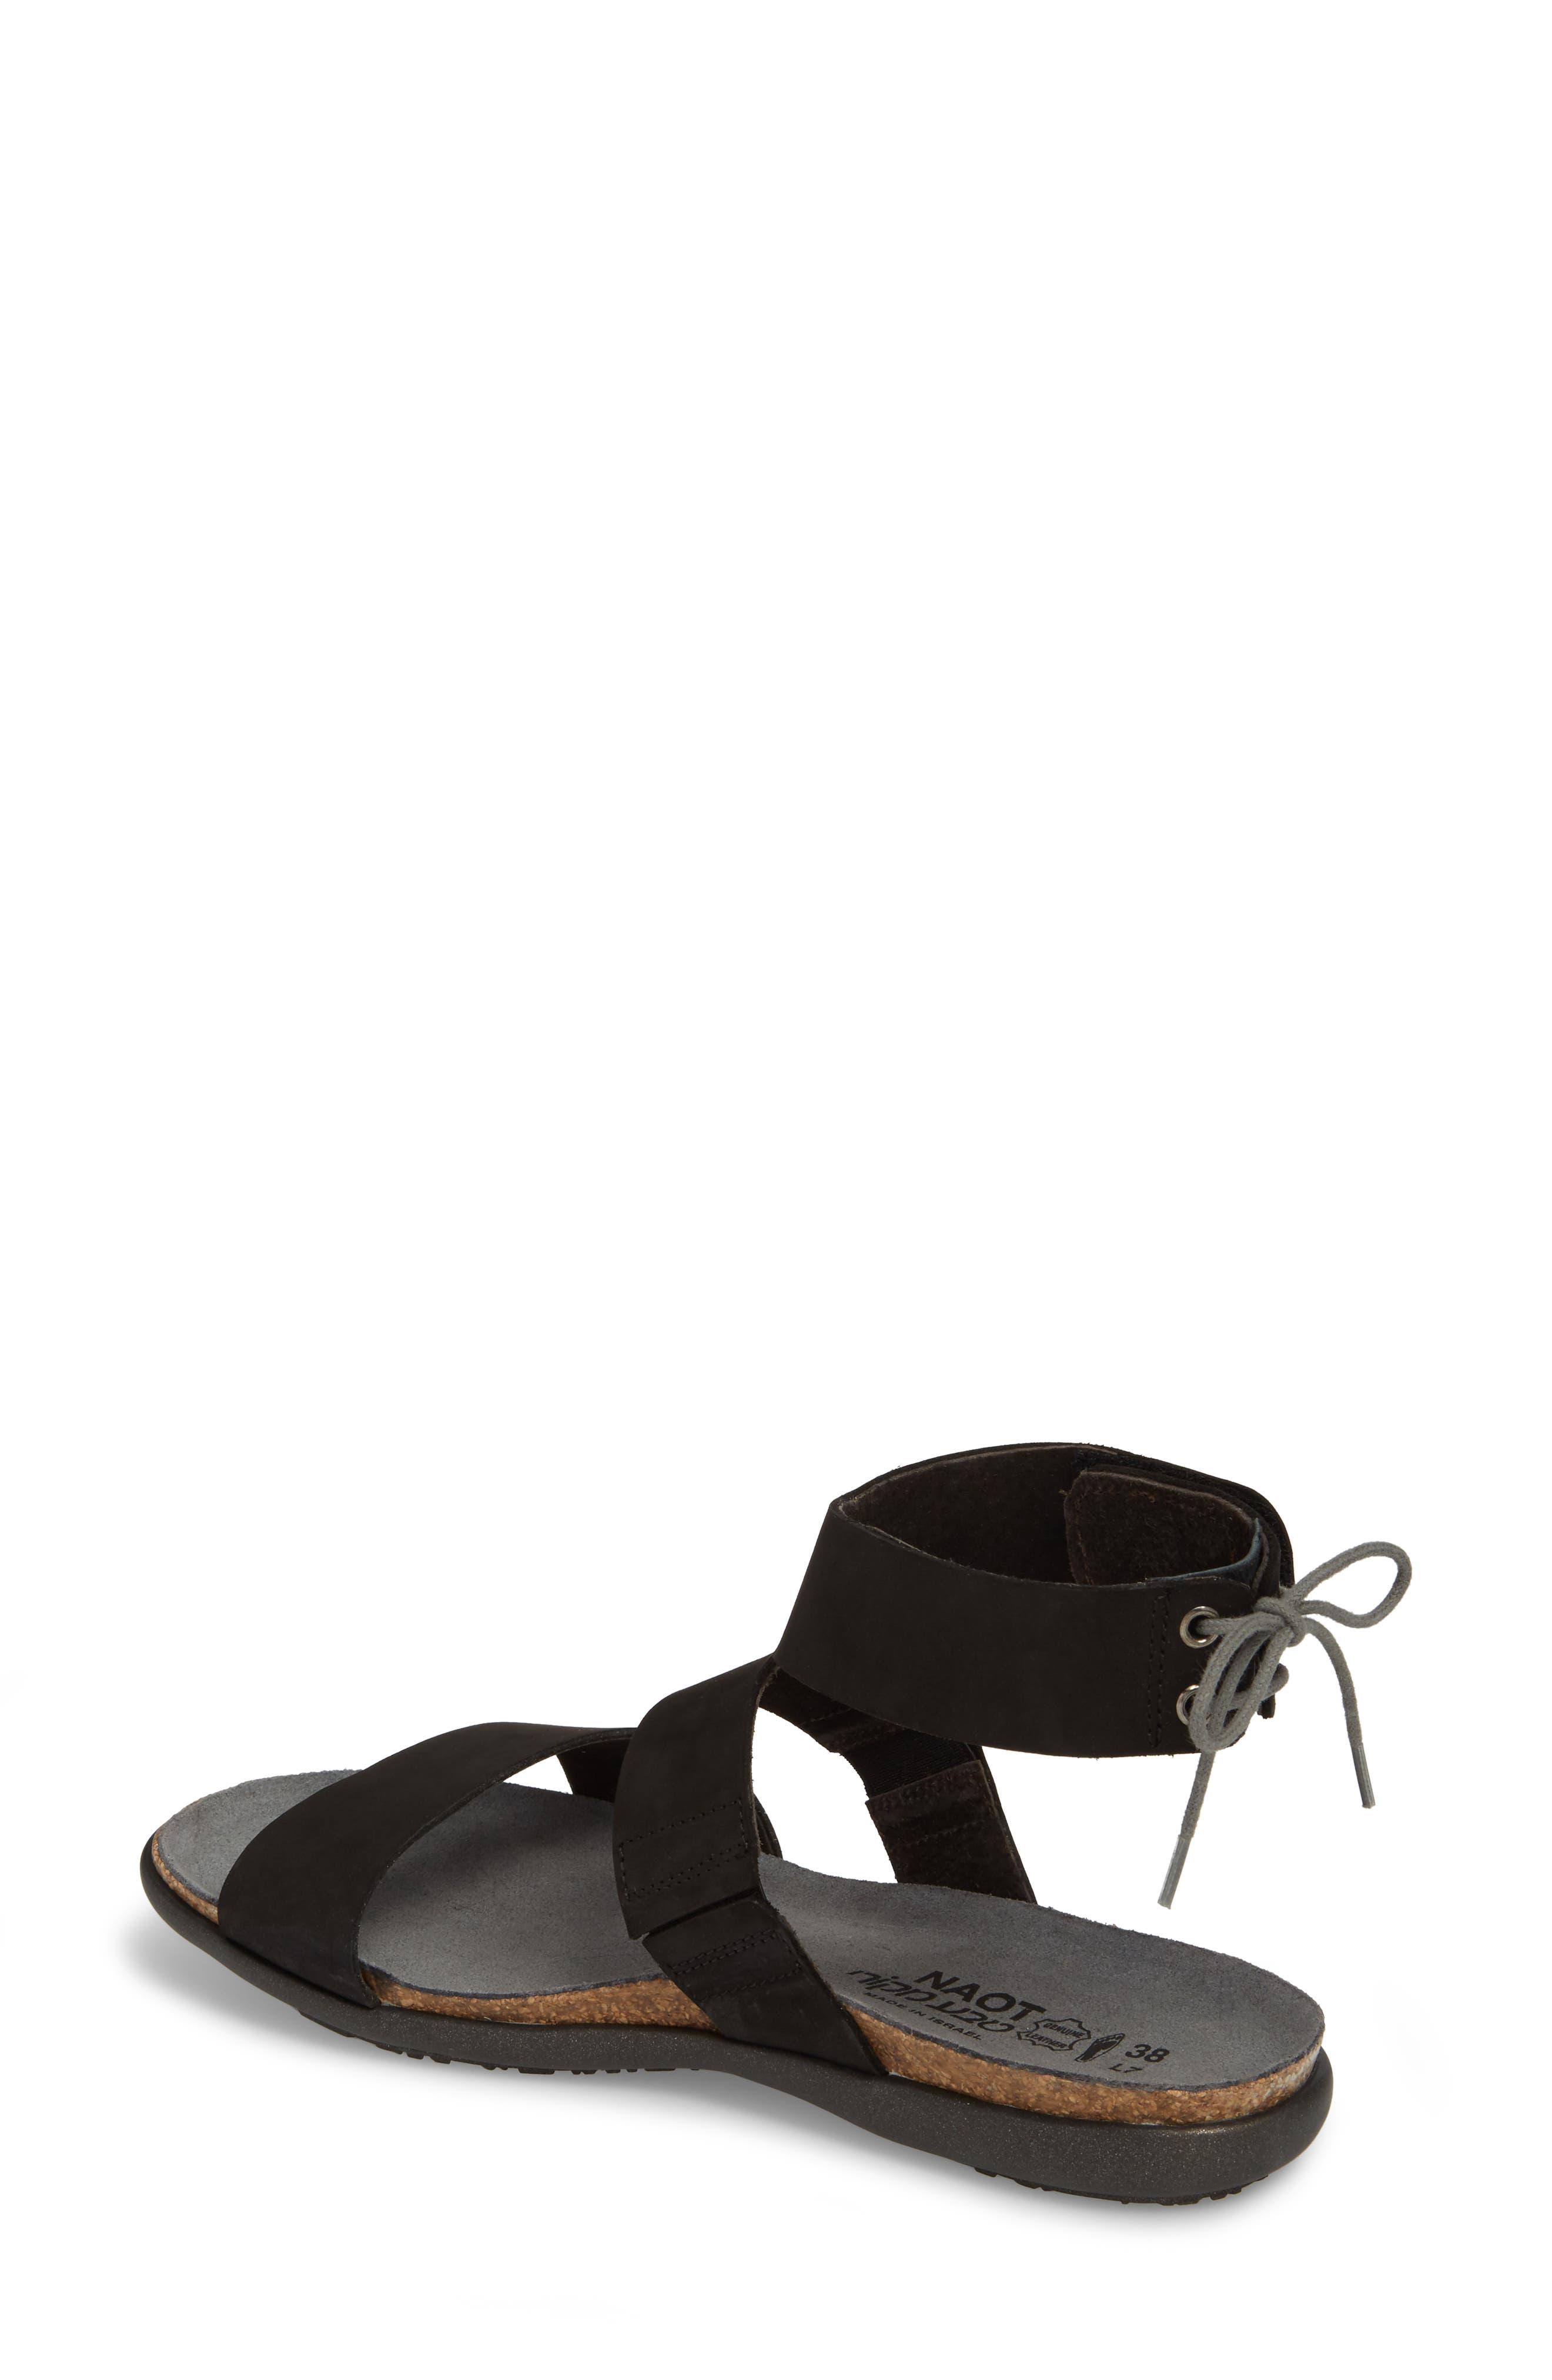 Larissa Ankle Strap Sandal,                             Alternate thumbnail 5, color,